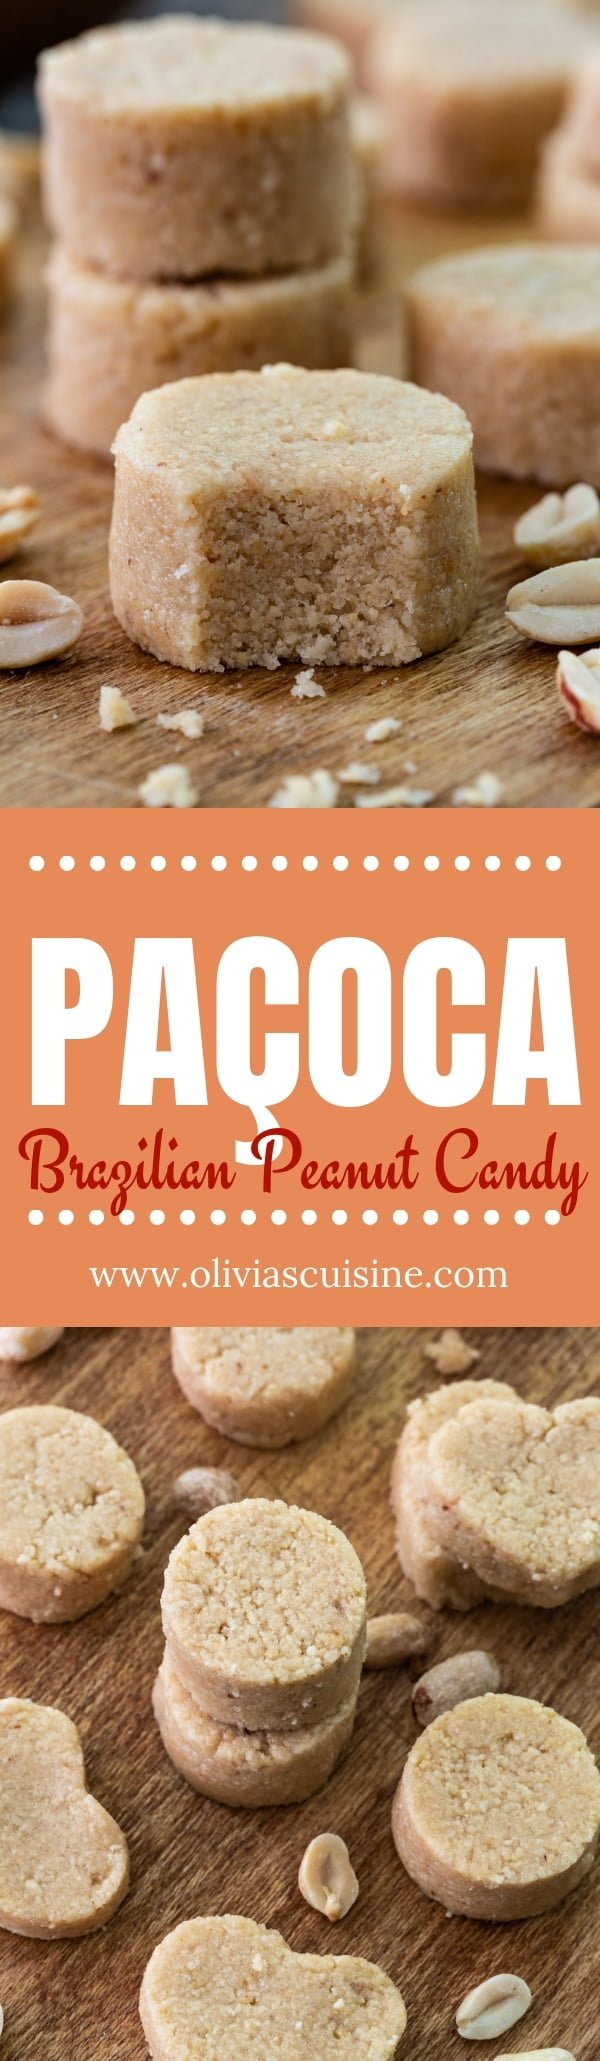 Paçoca (Brazilian Peanut Candy) | www.oliviascuisine.com | Extremely addictive, this 3-ingredient Paçoca is one of Brazil's most beloved treats. Very popular at the Festas Juninas, these candies are truly a peanut lovers dream! (Recipe and food photography by @oliviascuisine.)